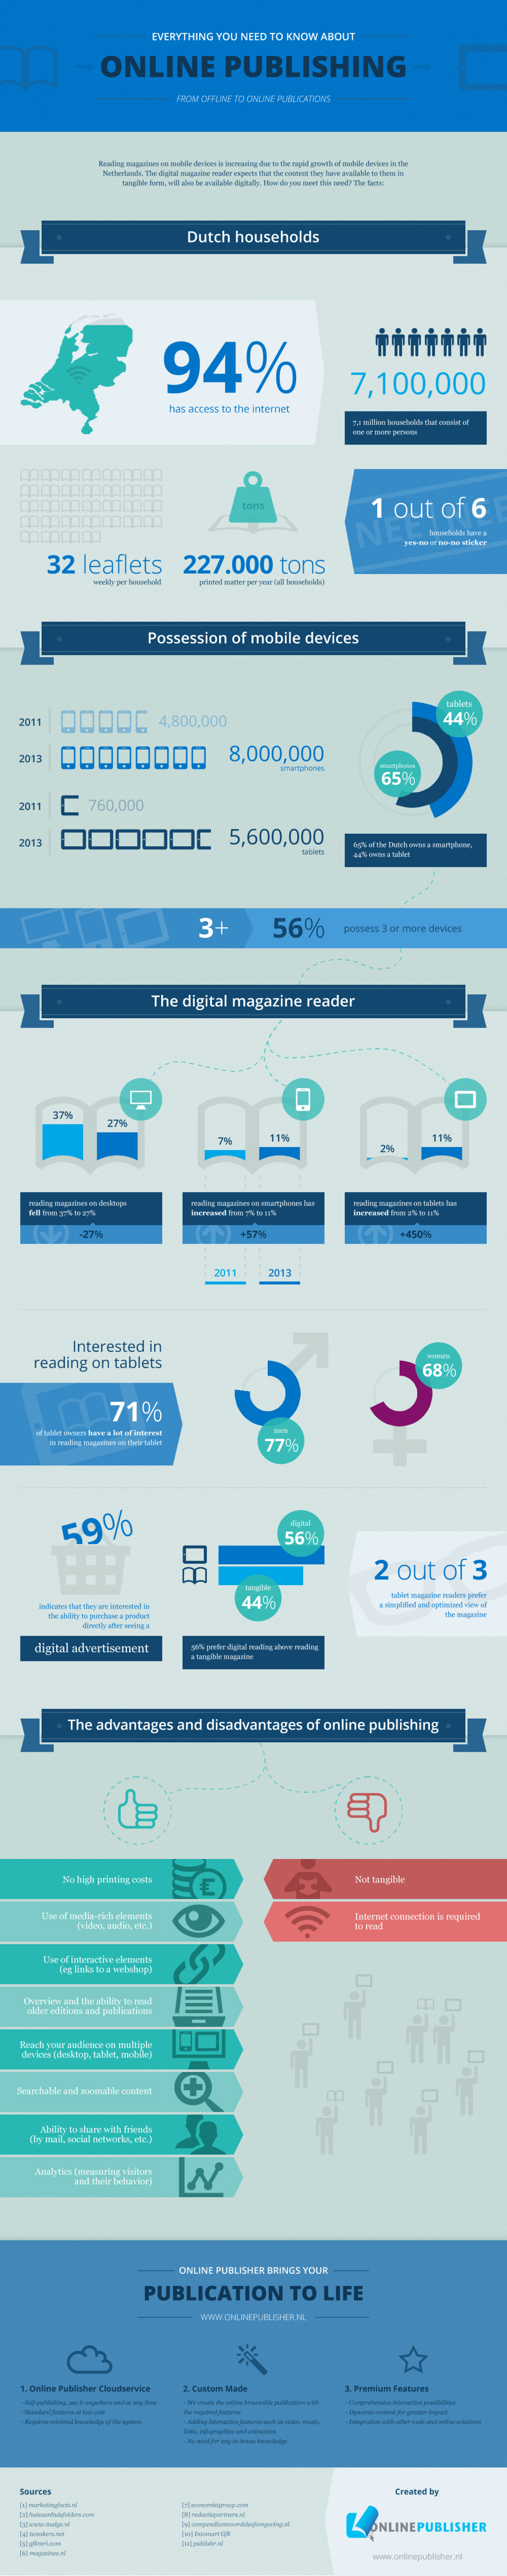 Everything you need to know about online publishing Infographic